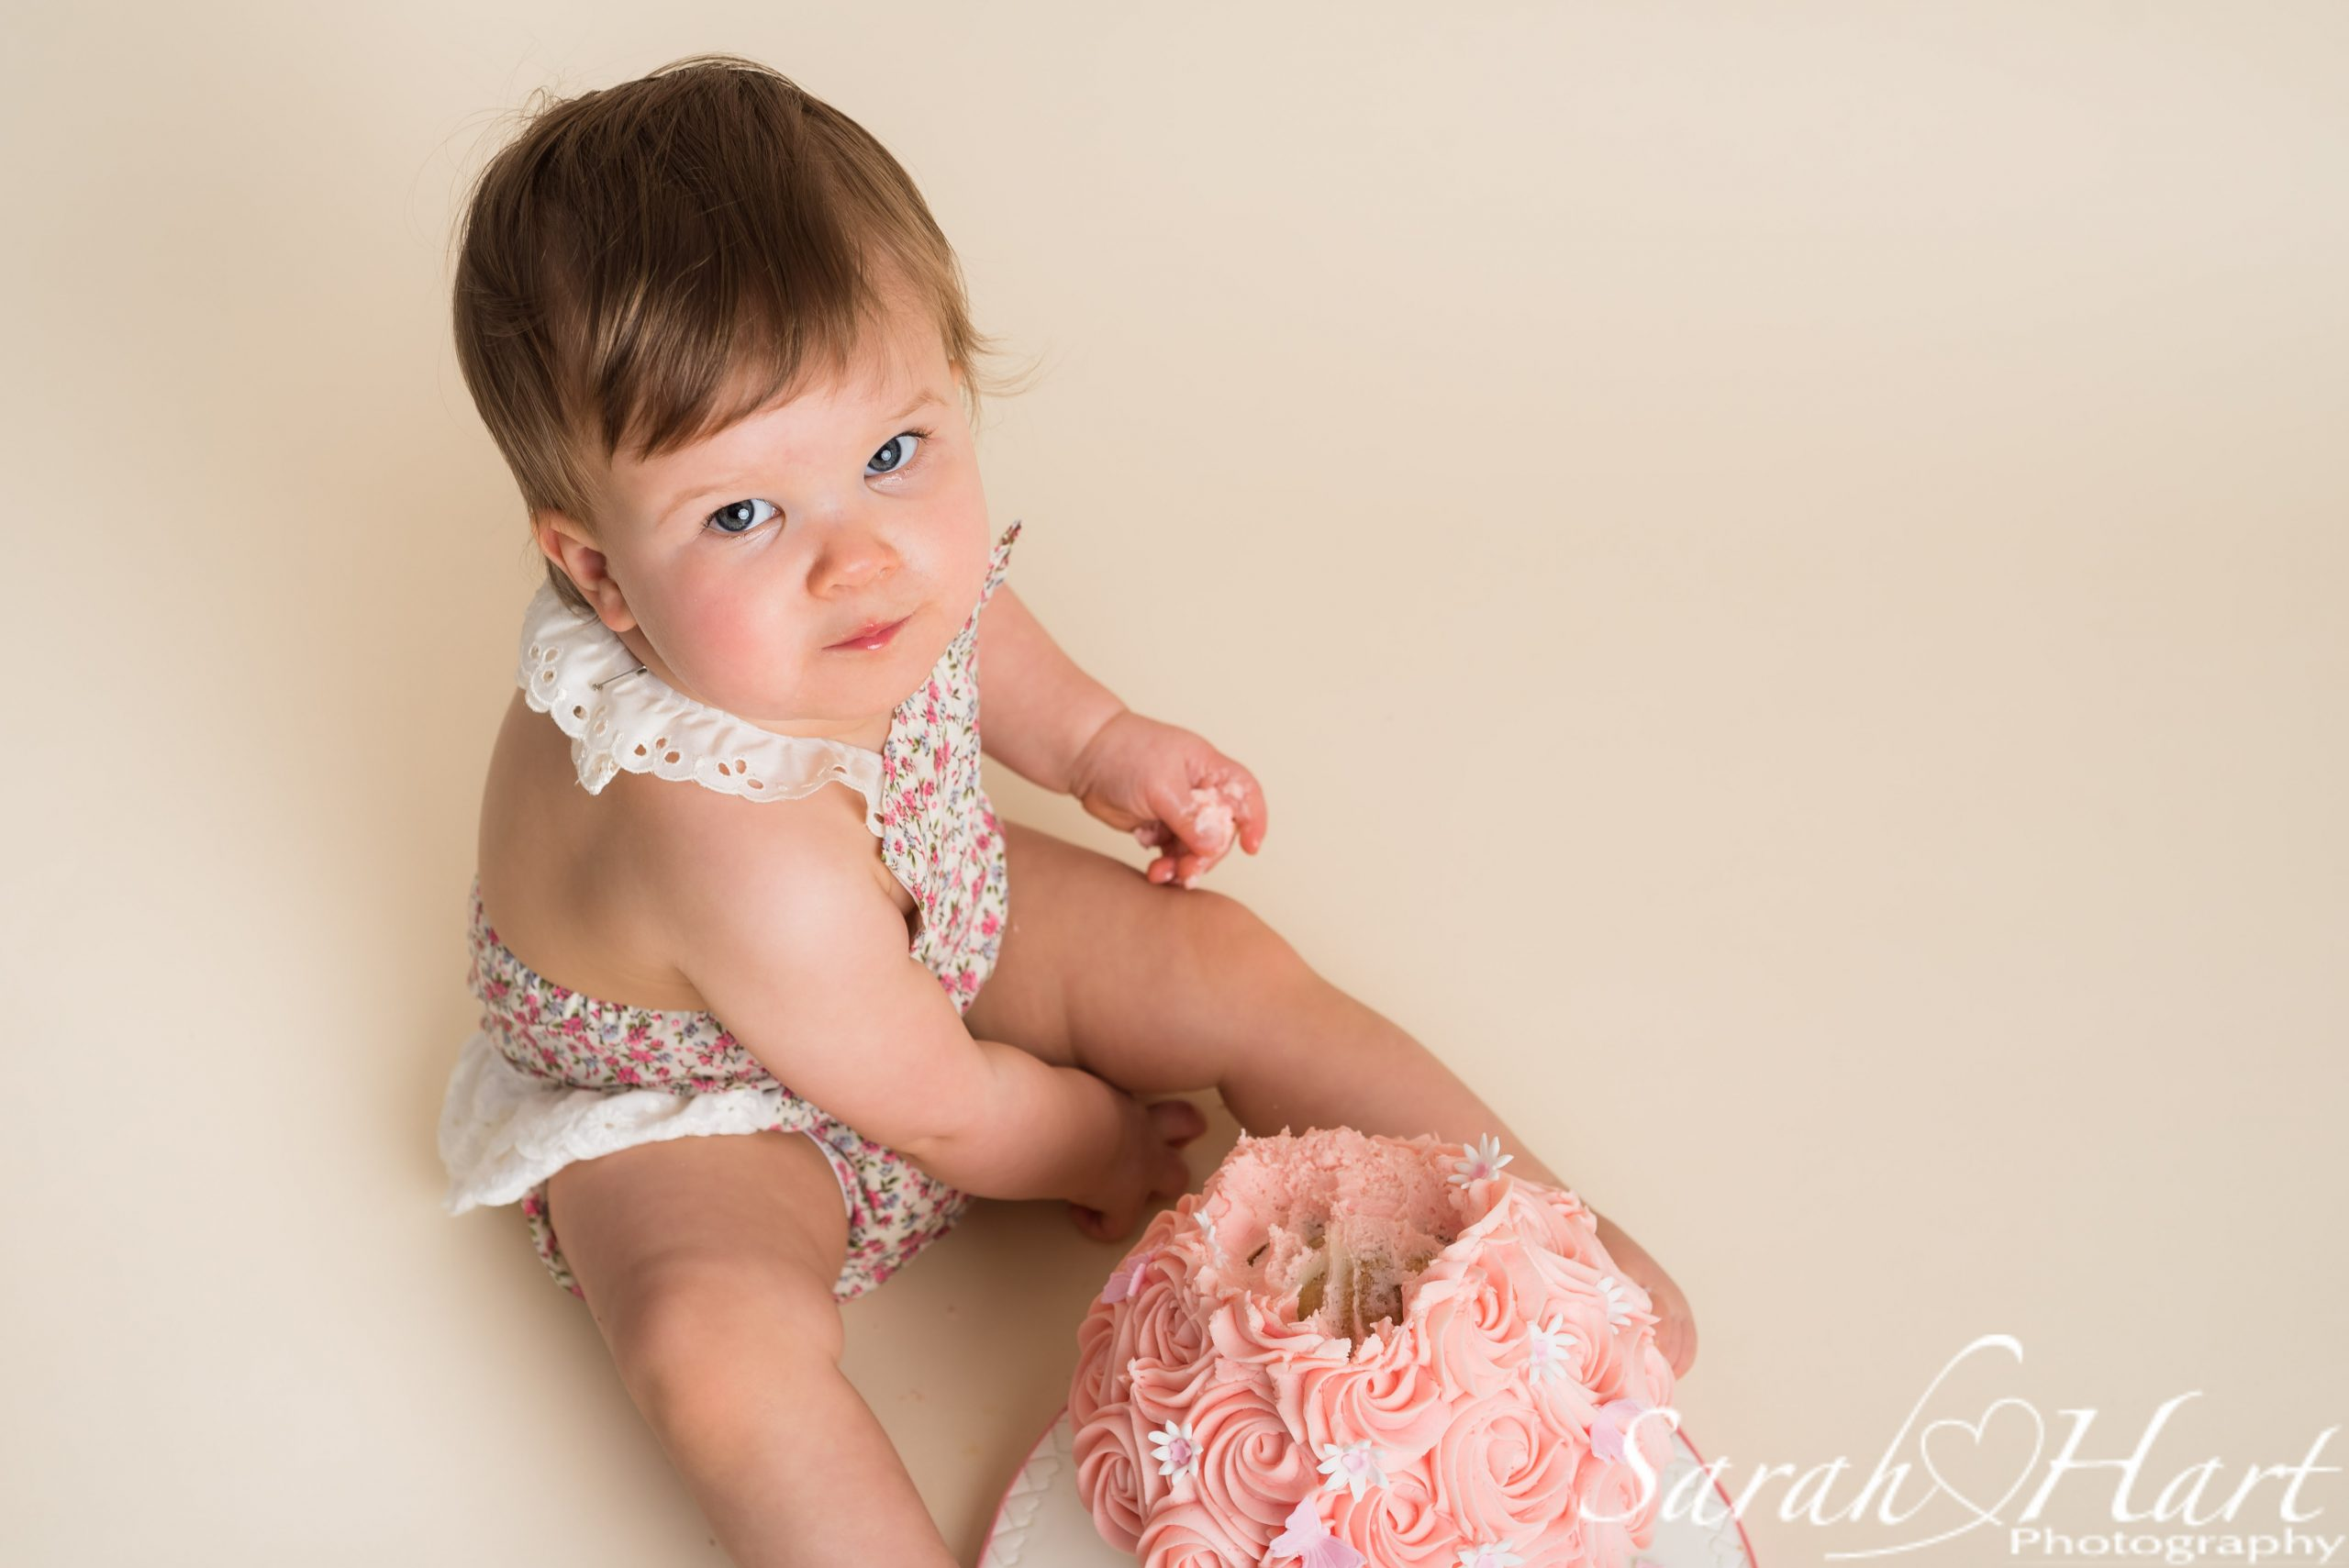 cute romper outfit for cake smash,, Sarah Hart Photography, Tonbridge photographer